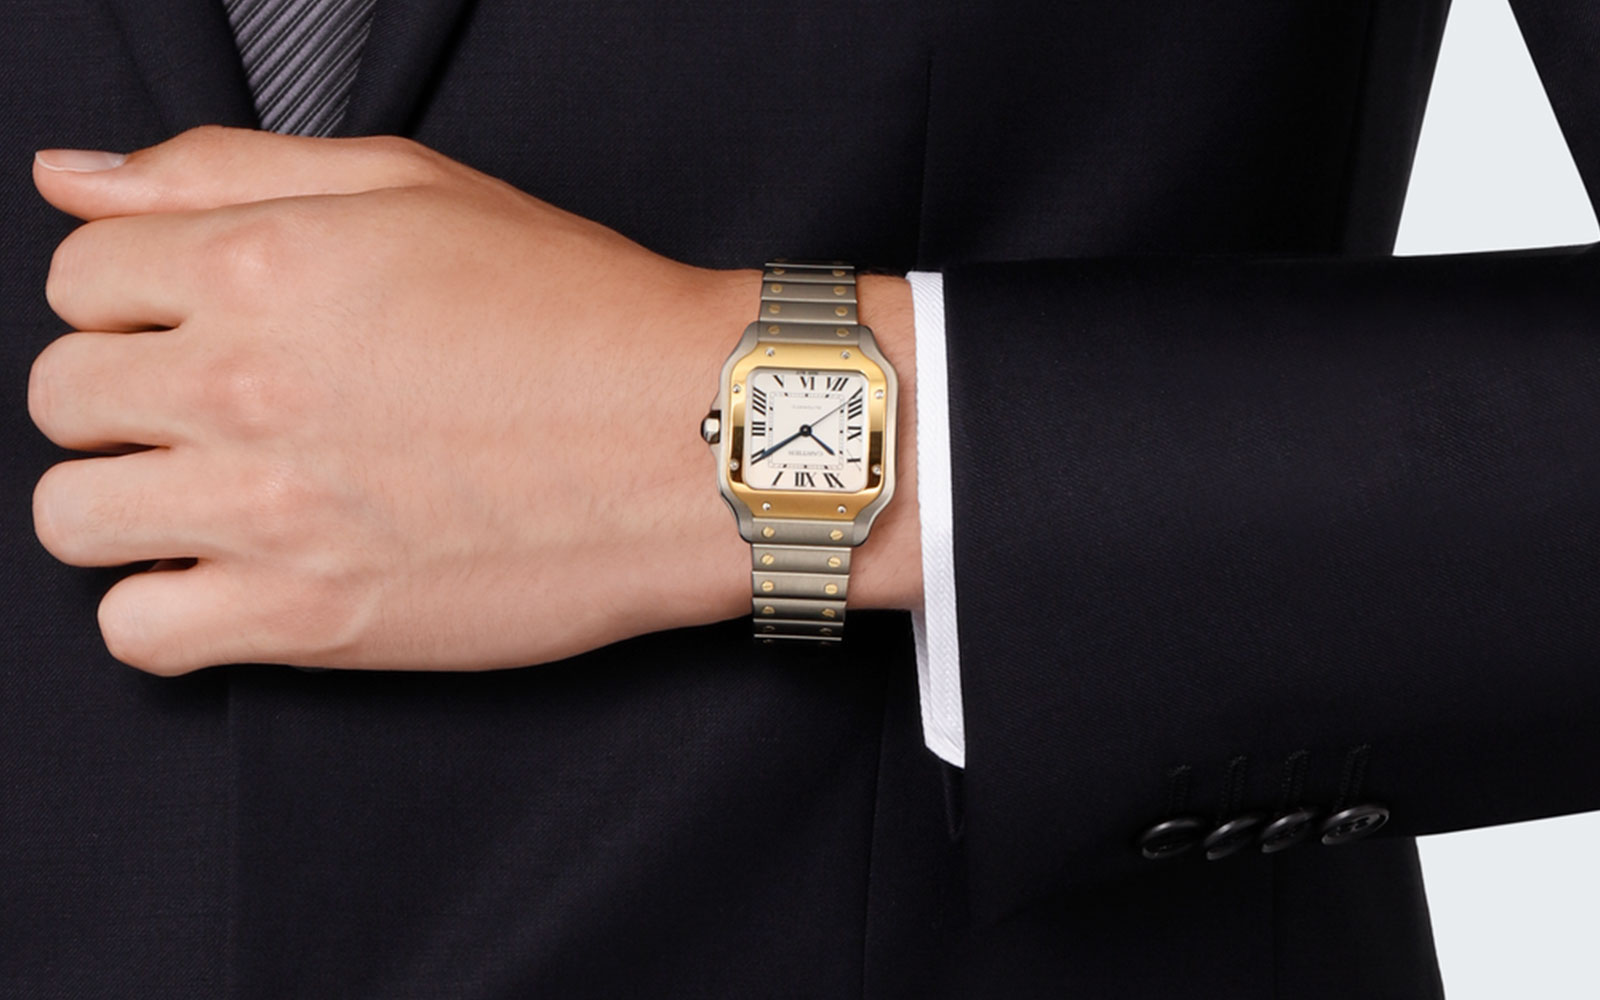 SANTOS DE CARTIER WATCH - feature